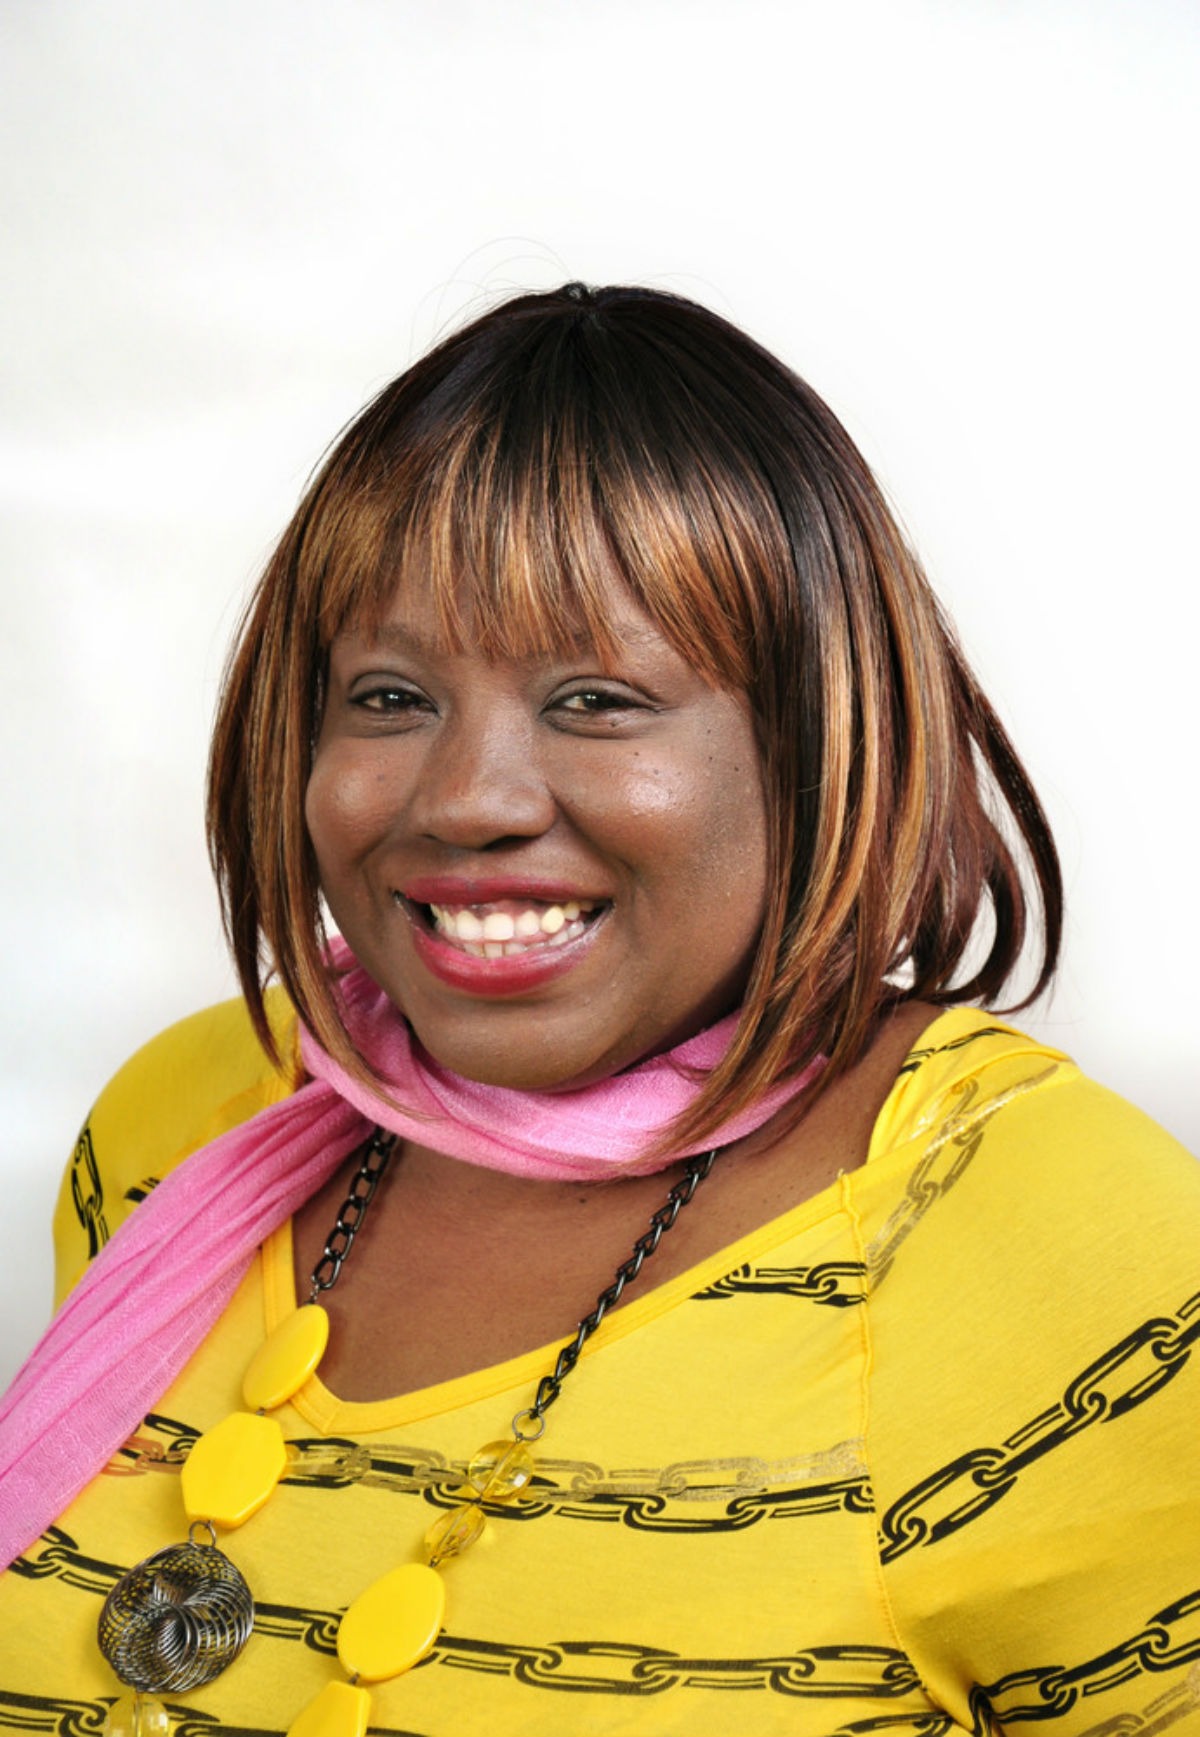 Councillor Pauline Gibson rebuked by Haringey Borough Council's Standards Committee for making false racism accusations